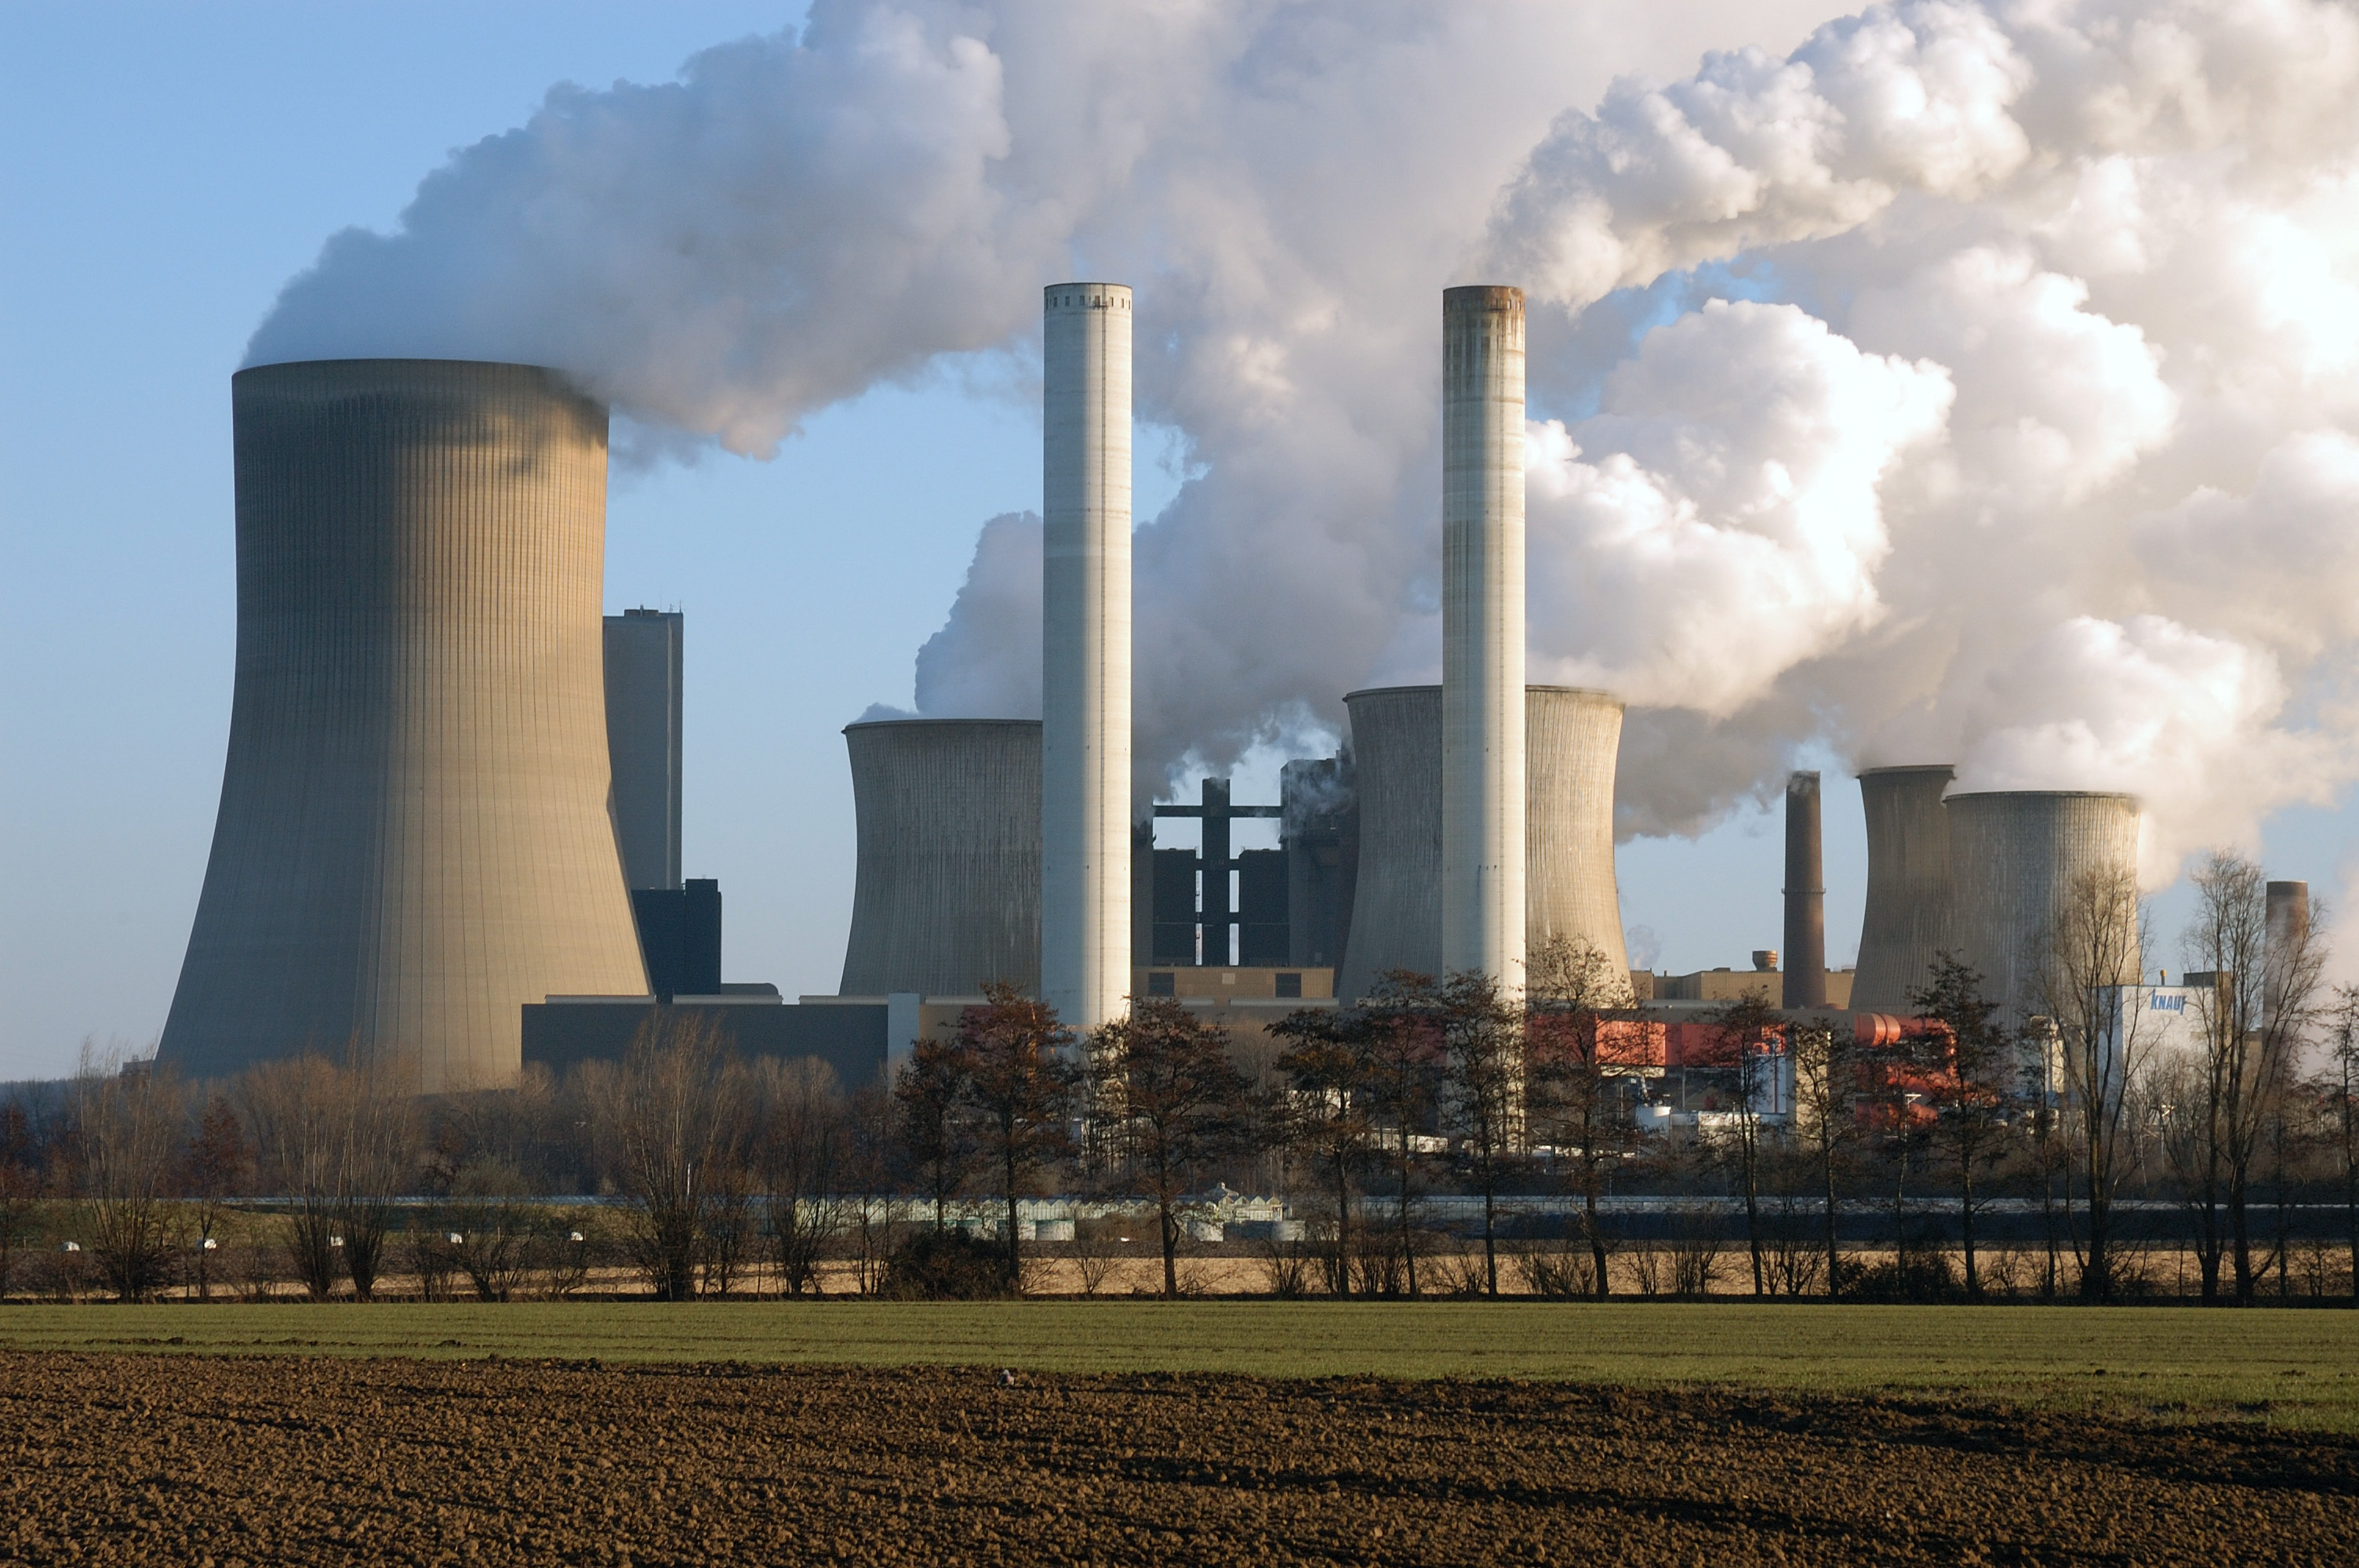 coal fired power plant Today, consumers energy ceo patti poppe announced the retirement by 2023 of the company's karn coal-burning power plant, which emits nearly 3 million tons of carbon pollution per year.